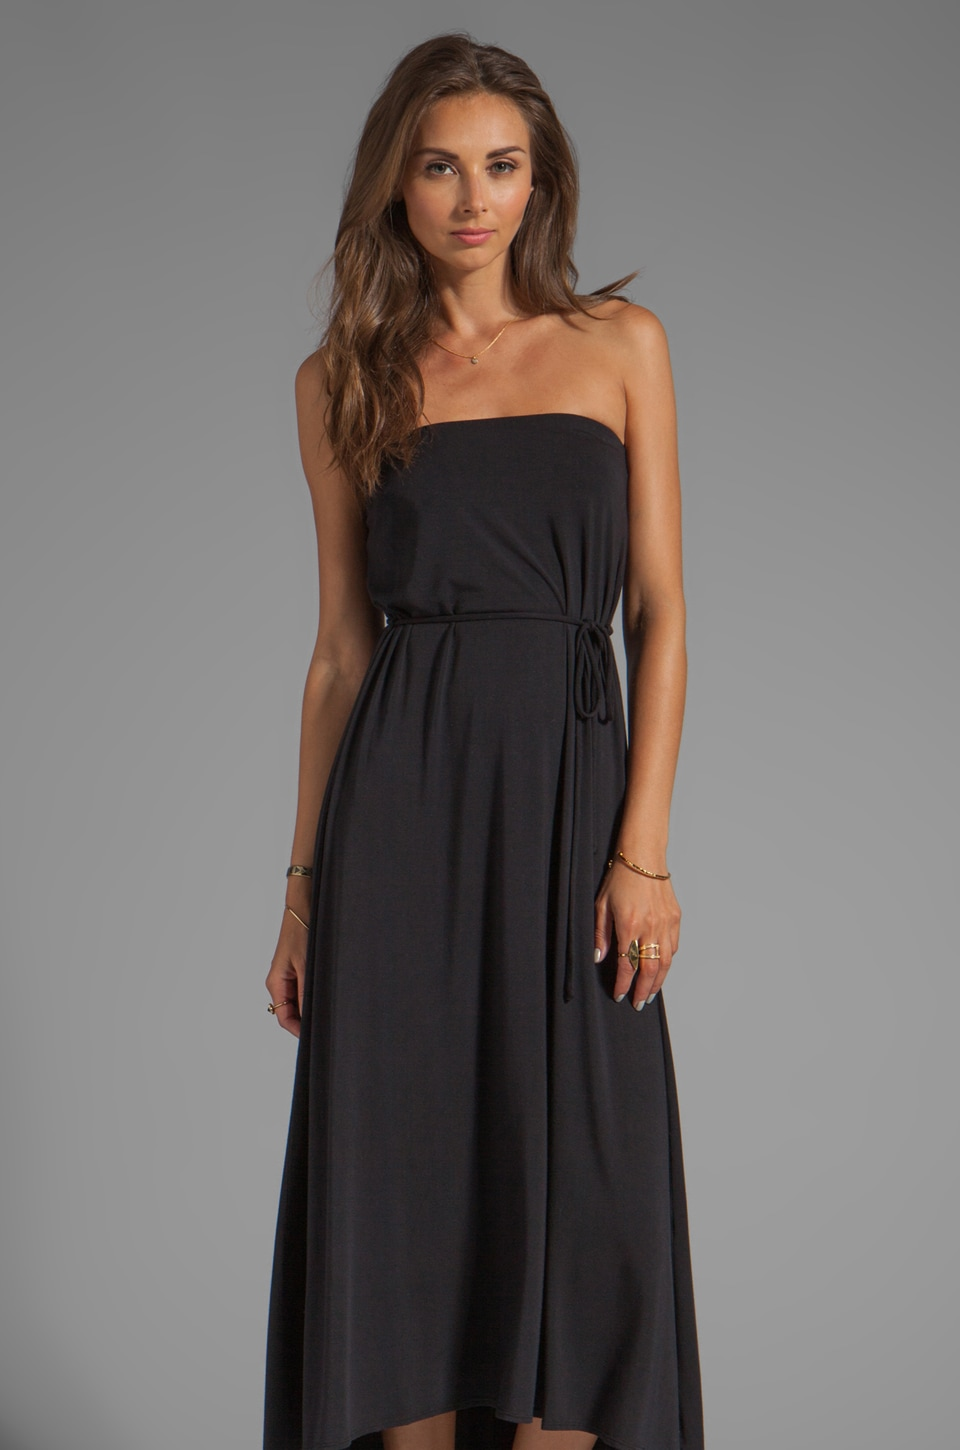 krisa Tube Maxi Dress in Black